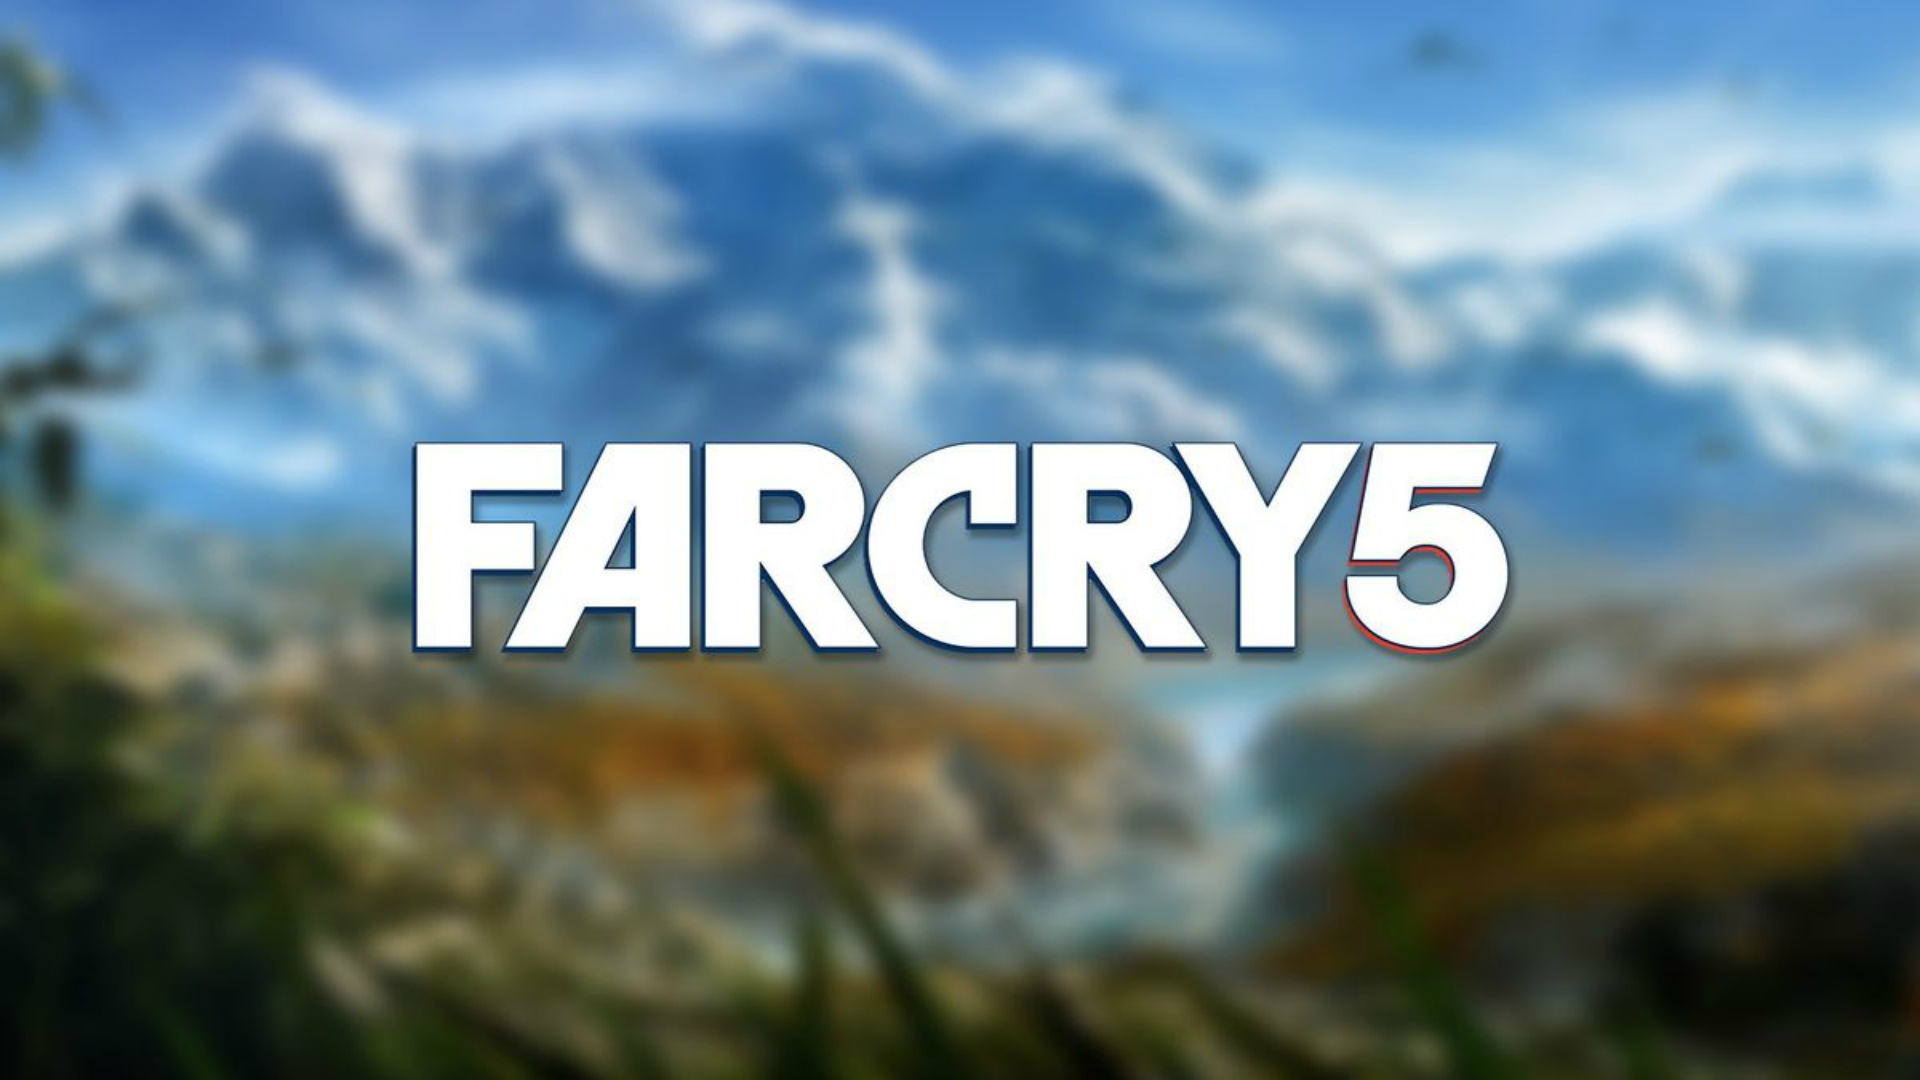 Ubisoft begins teasing Far Cry 5, full reveal coming this week